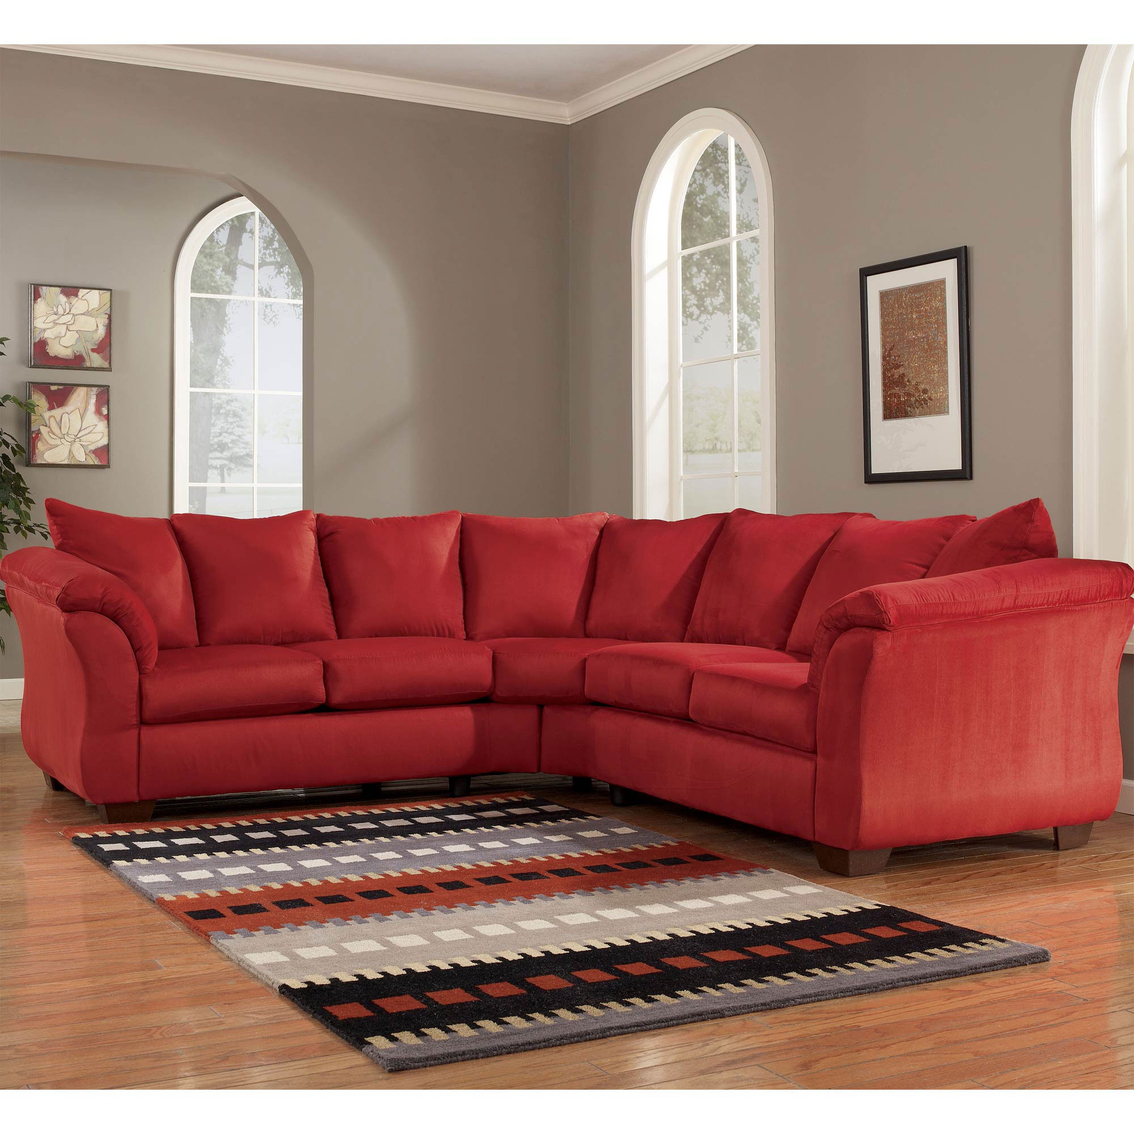 Signature Design By Ashley Darcy 2 Pc. Sectional | Sofas & Couches ...